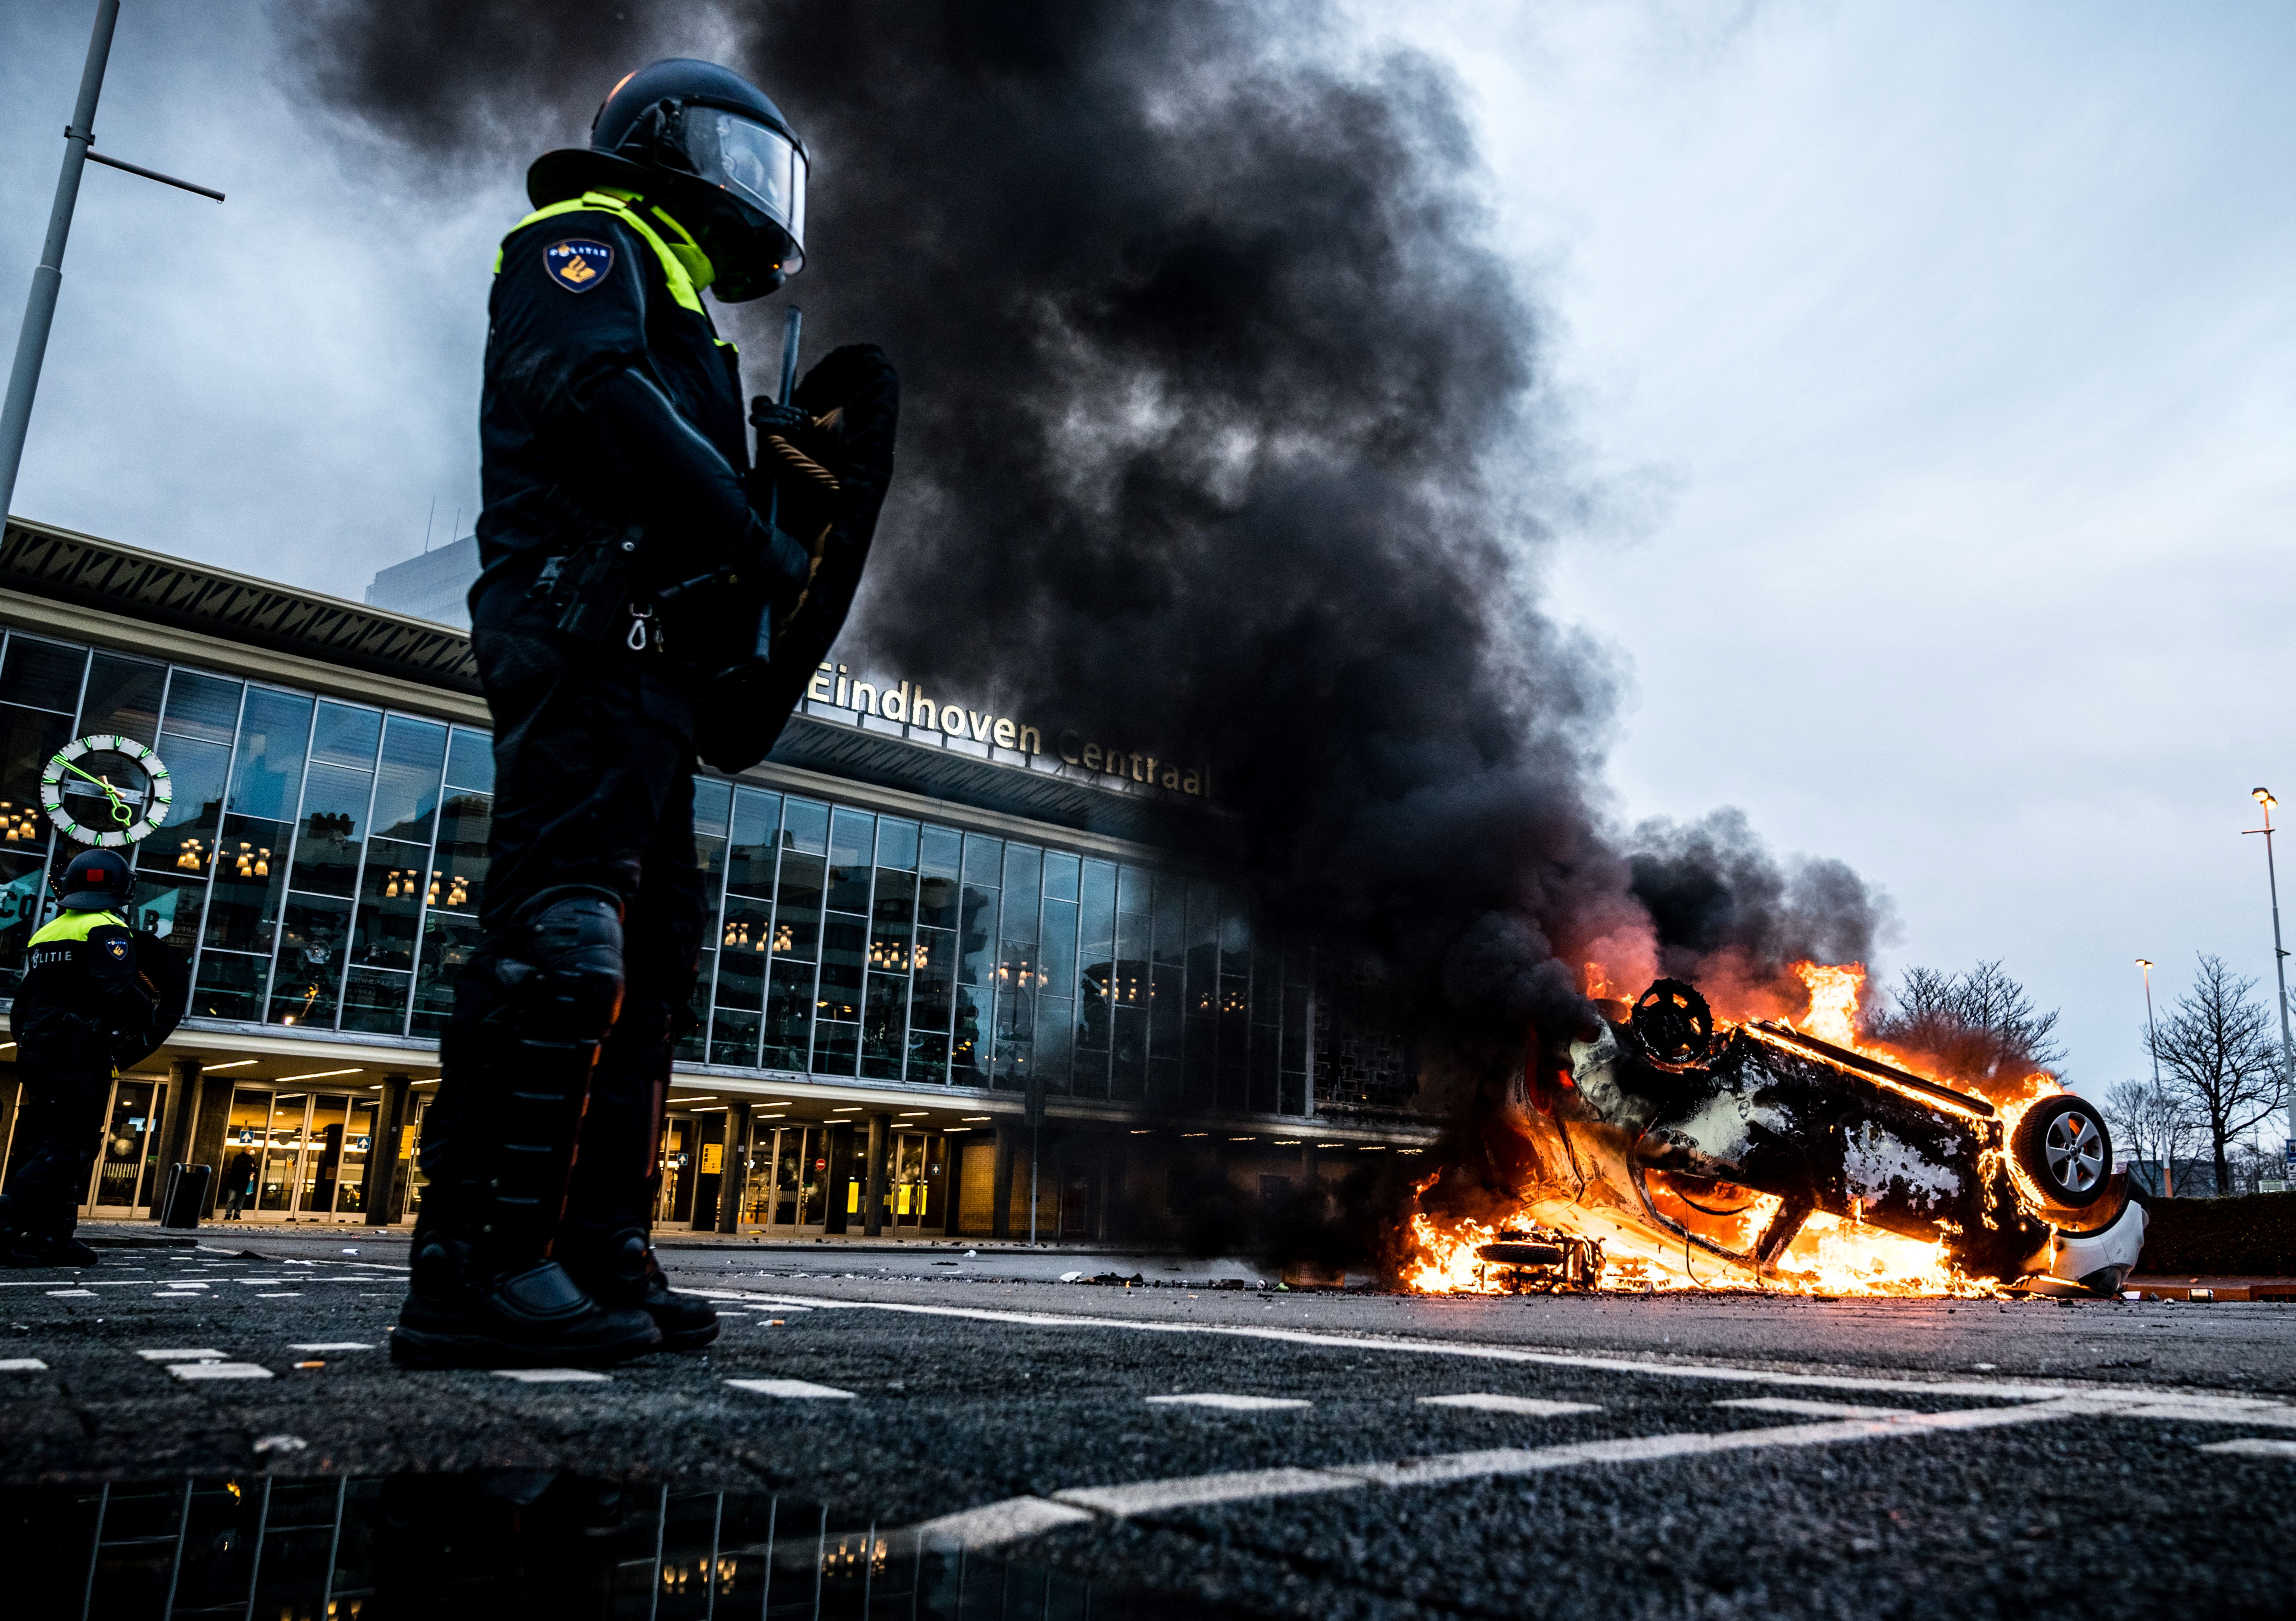 A car has been set on fire in front of the train station, on January 24, 2021 in Eindhoven, after a rally by several hundreds of people against the corona policy. (Photo by ROB ENGELAAR / various sources / AFP) / Netherlands OUT (Photo by ROB ENGELAAR/ANP/AFP via Getty Images)